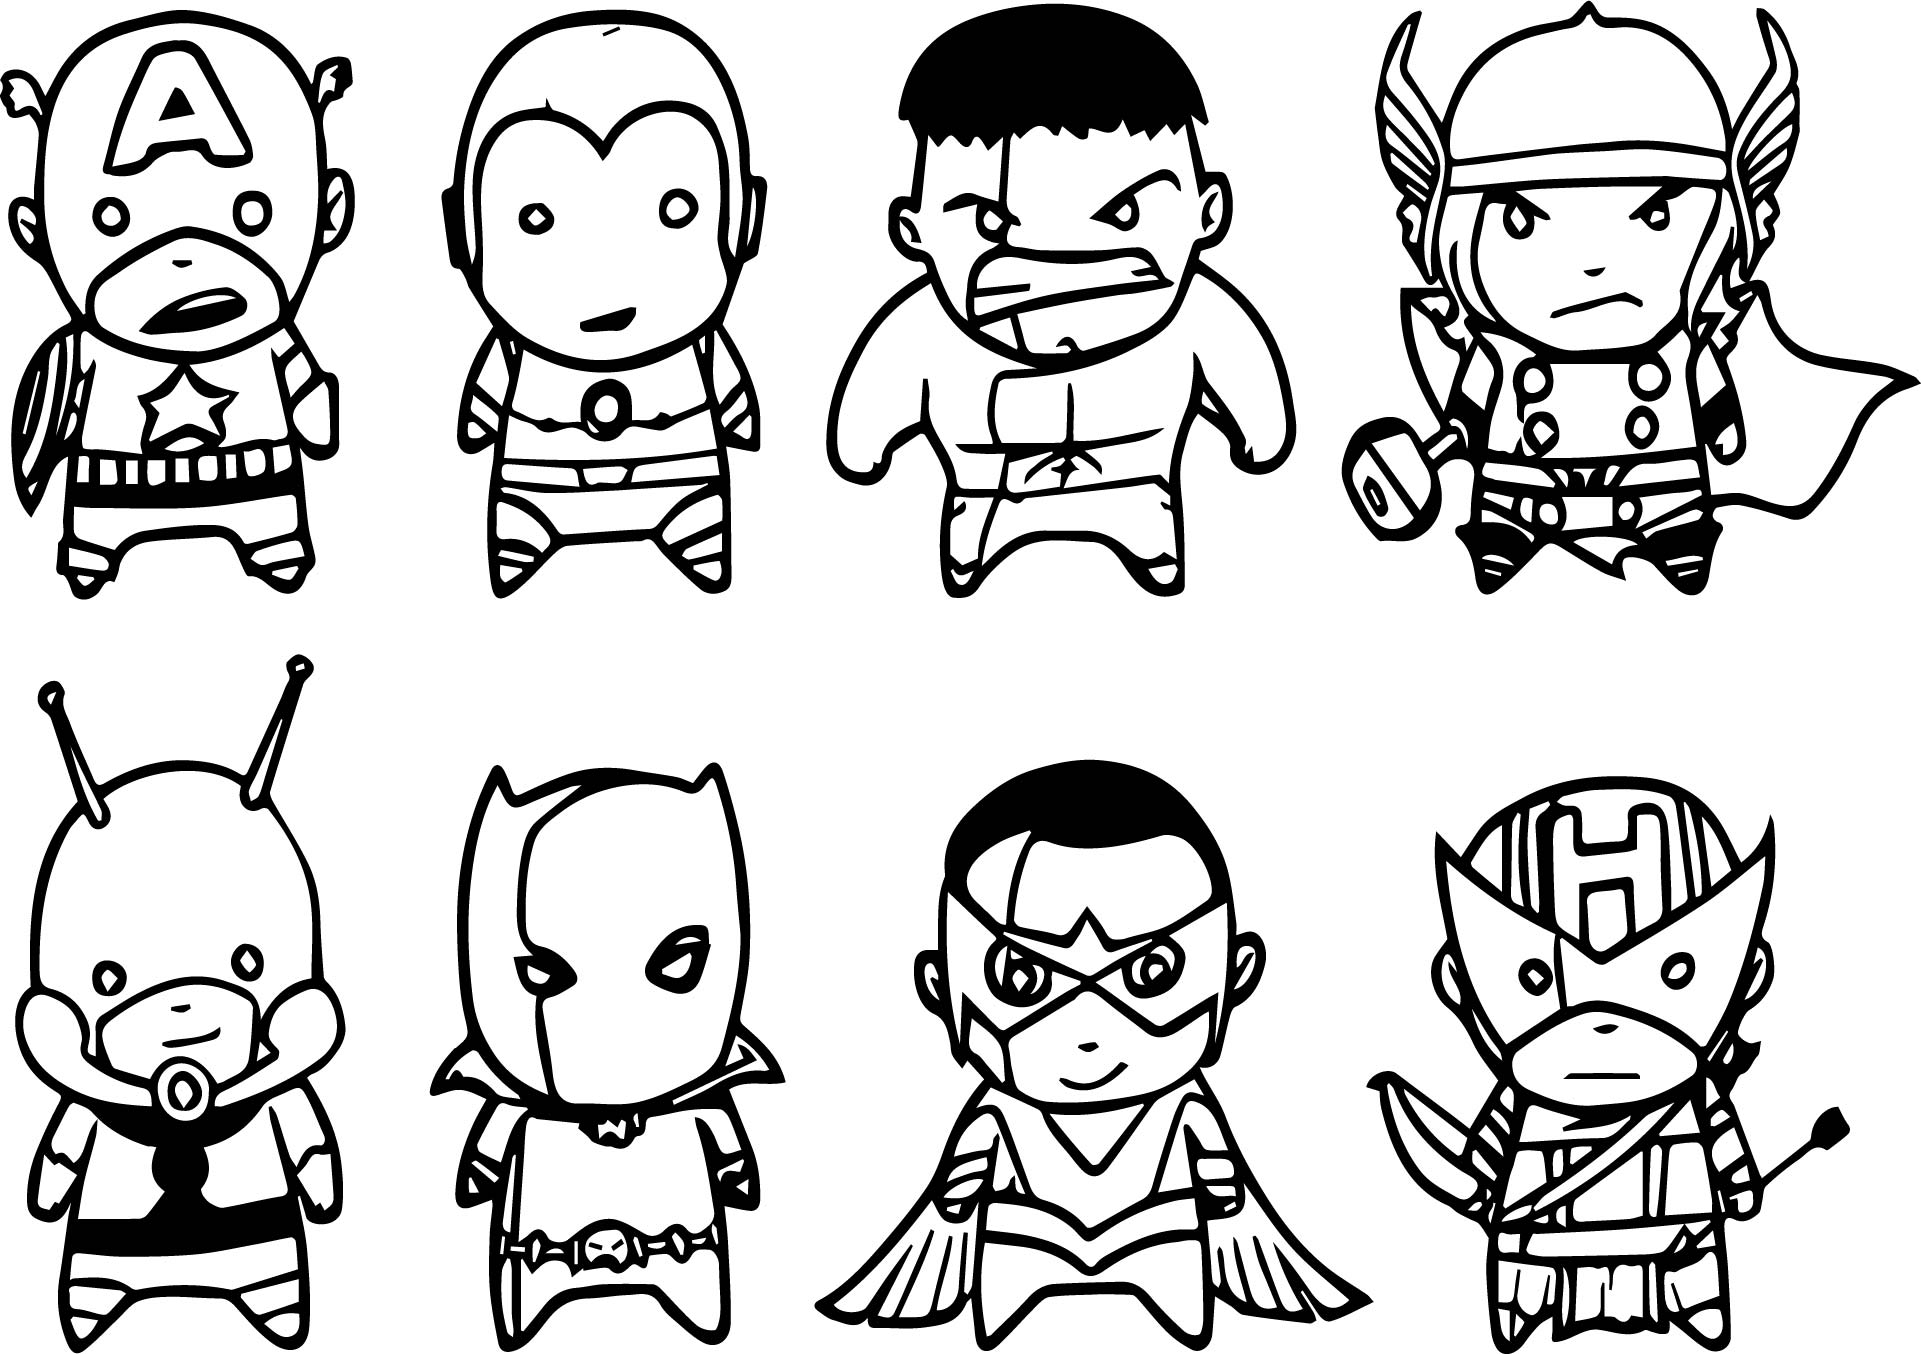 chibi avengers coloring pages awesome avengers chibi side coloring page with images pages chibi avengers coloring